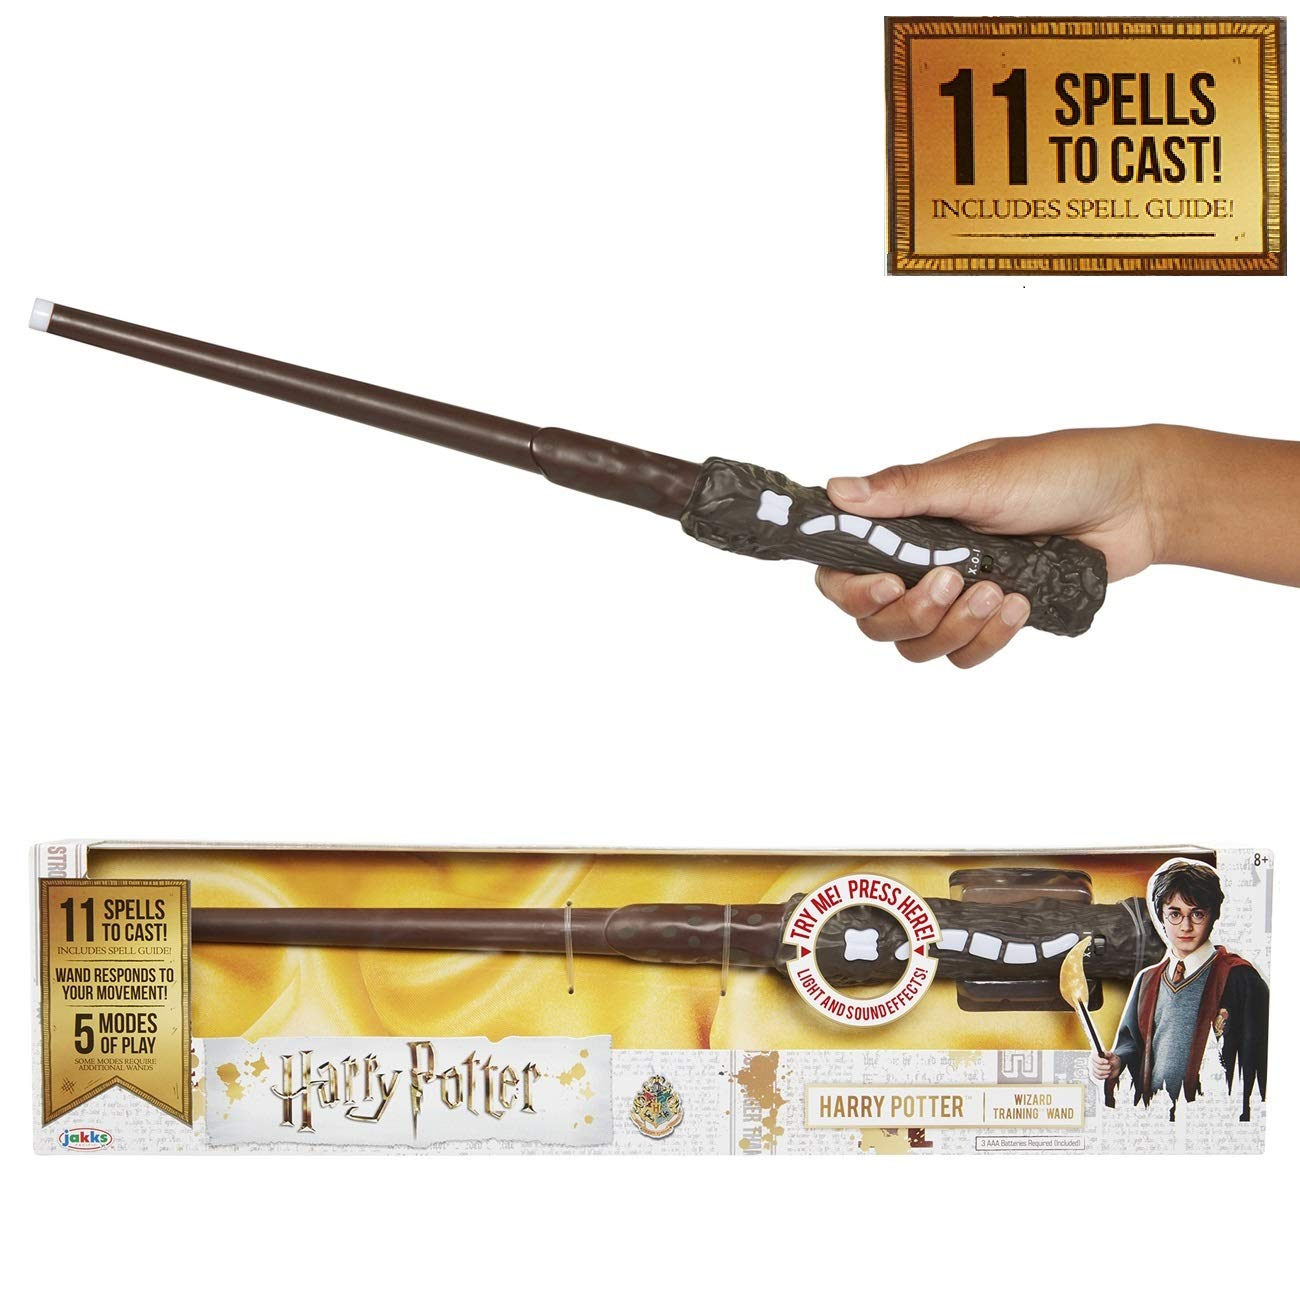 Harry Potter, Harry Potter's Wizard Training Wand - 11 SPELLS TO CAST! by HARRY POTTER (Image #1)